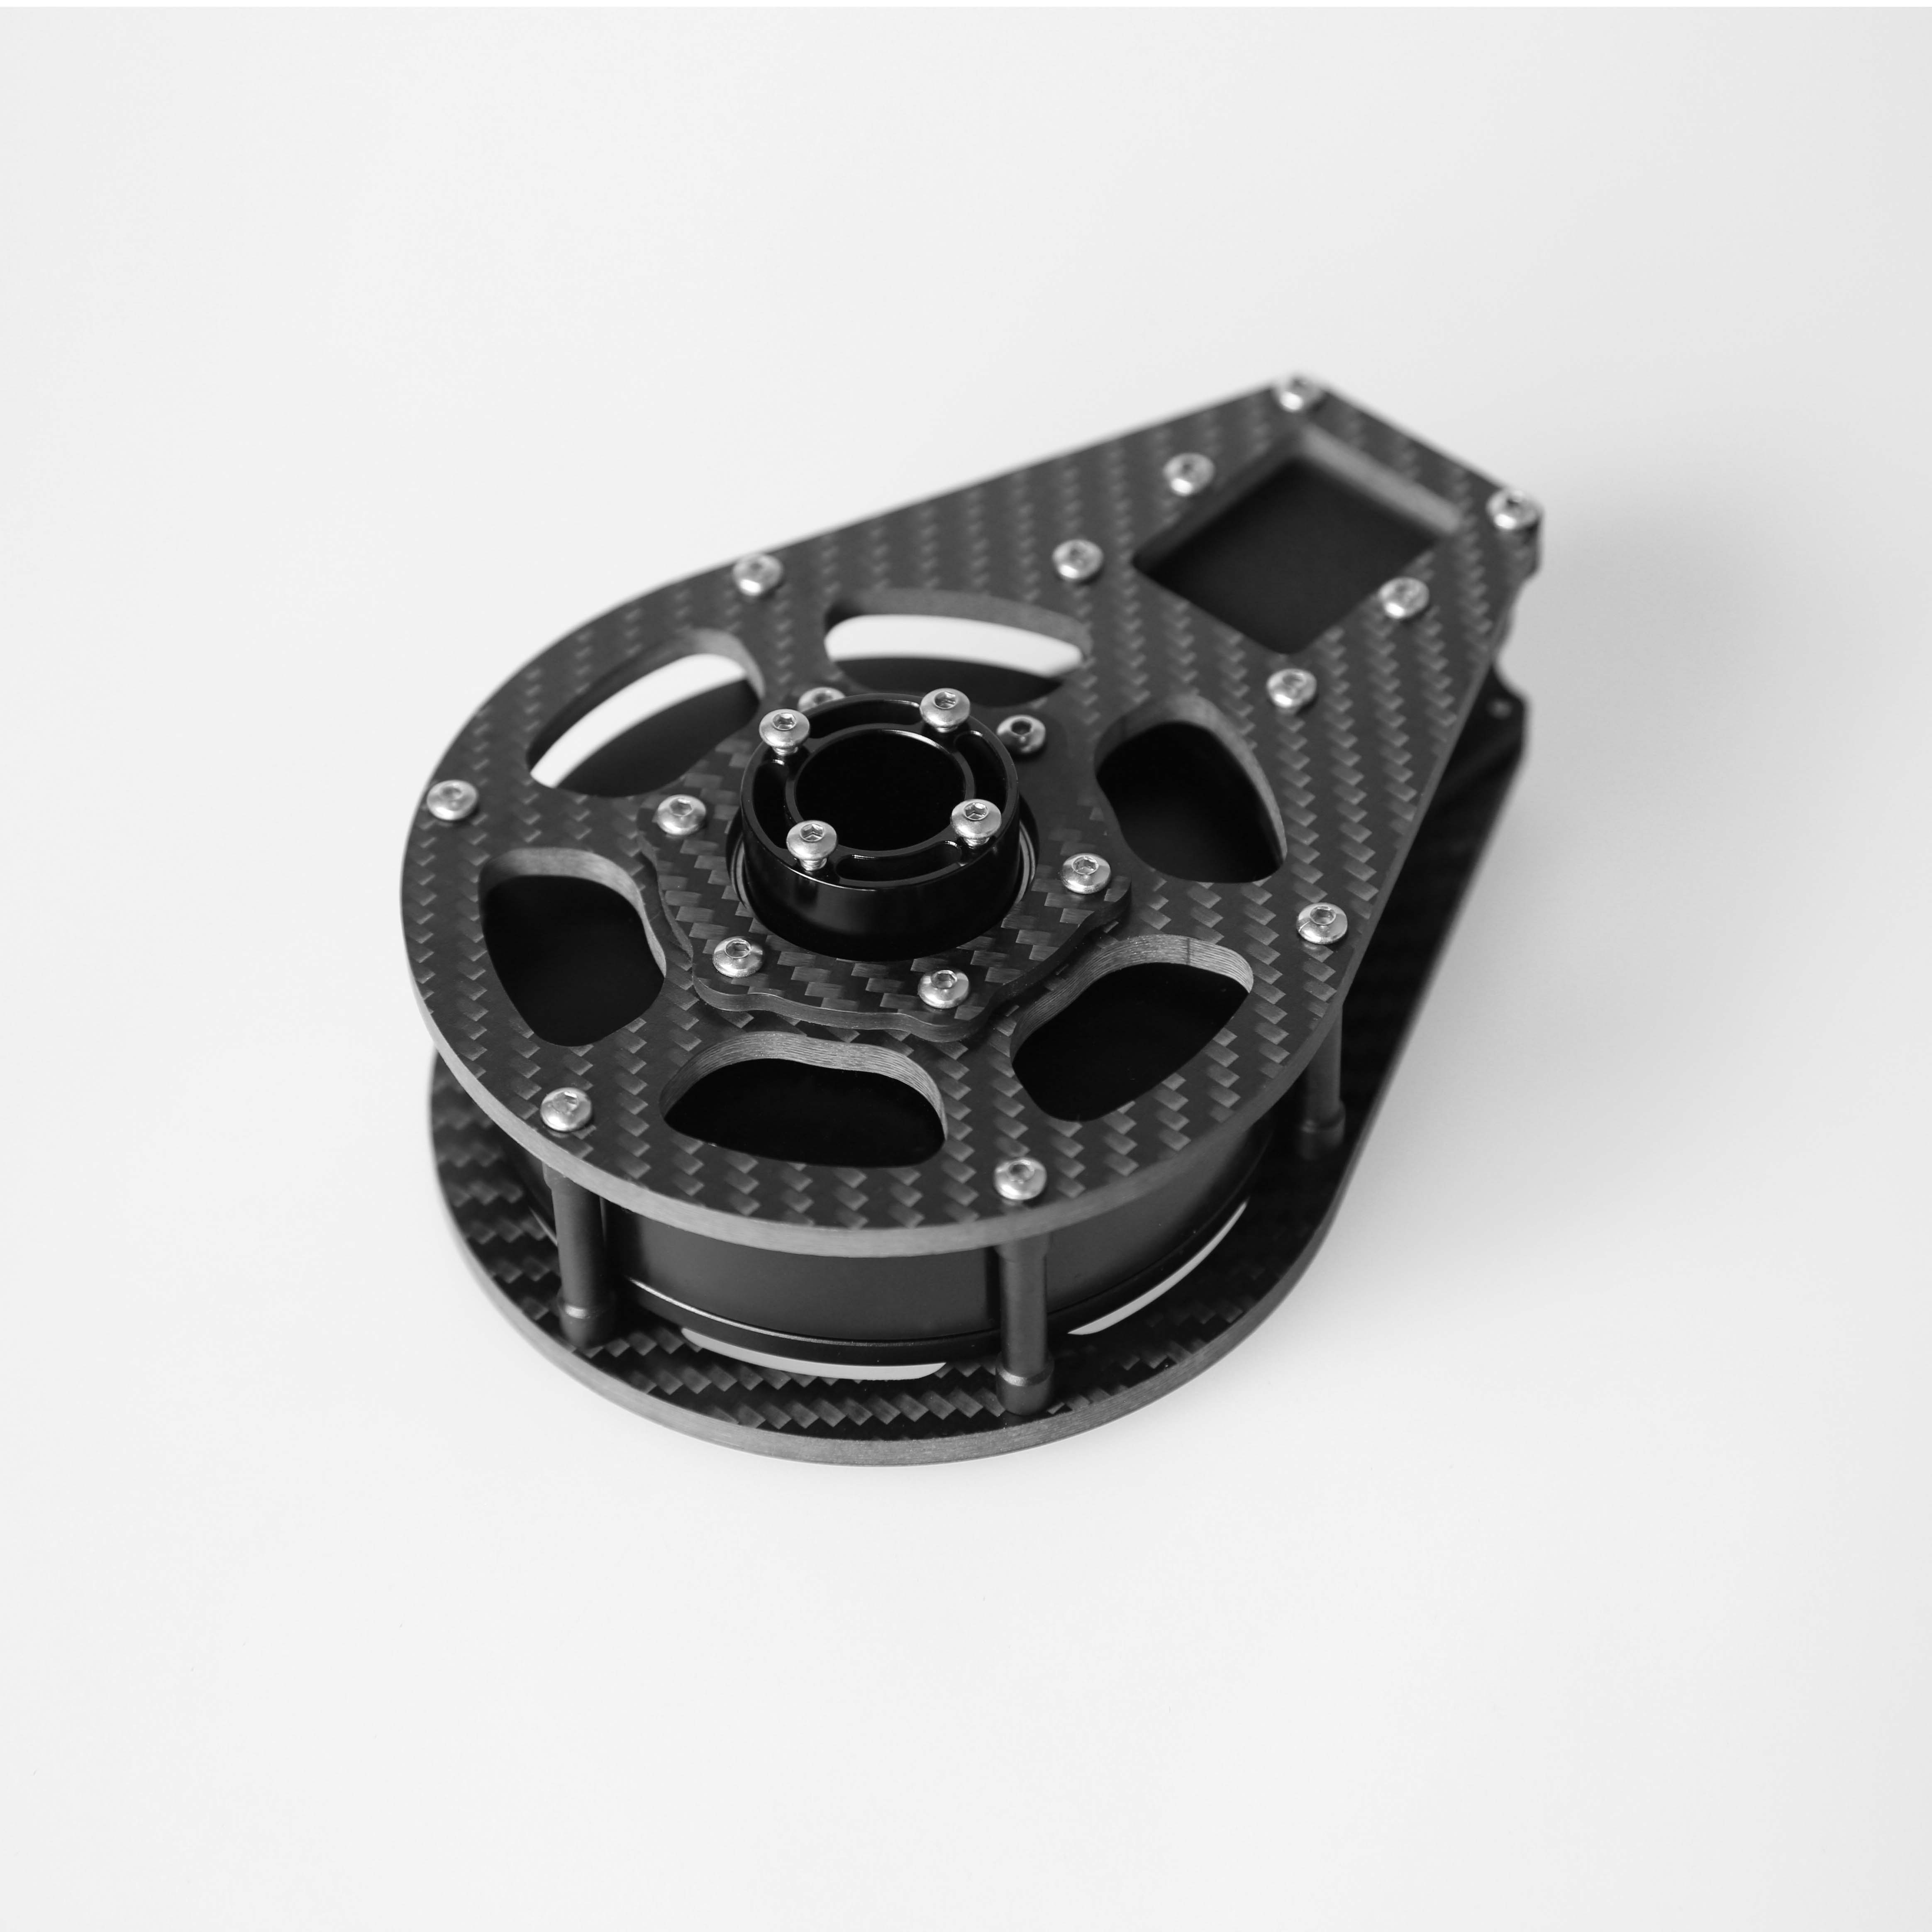 Carbon fiber motor cage 3 Axis Tilt X Axis with 6208 motor